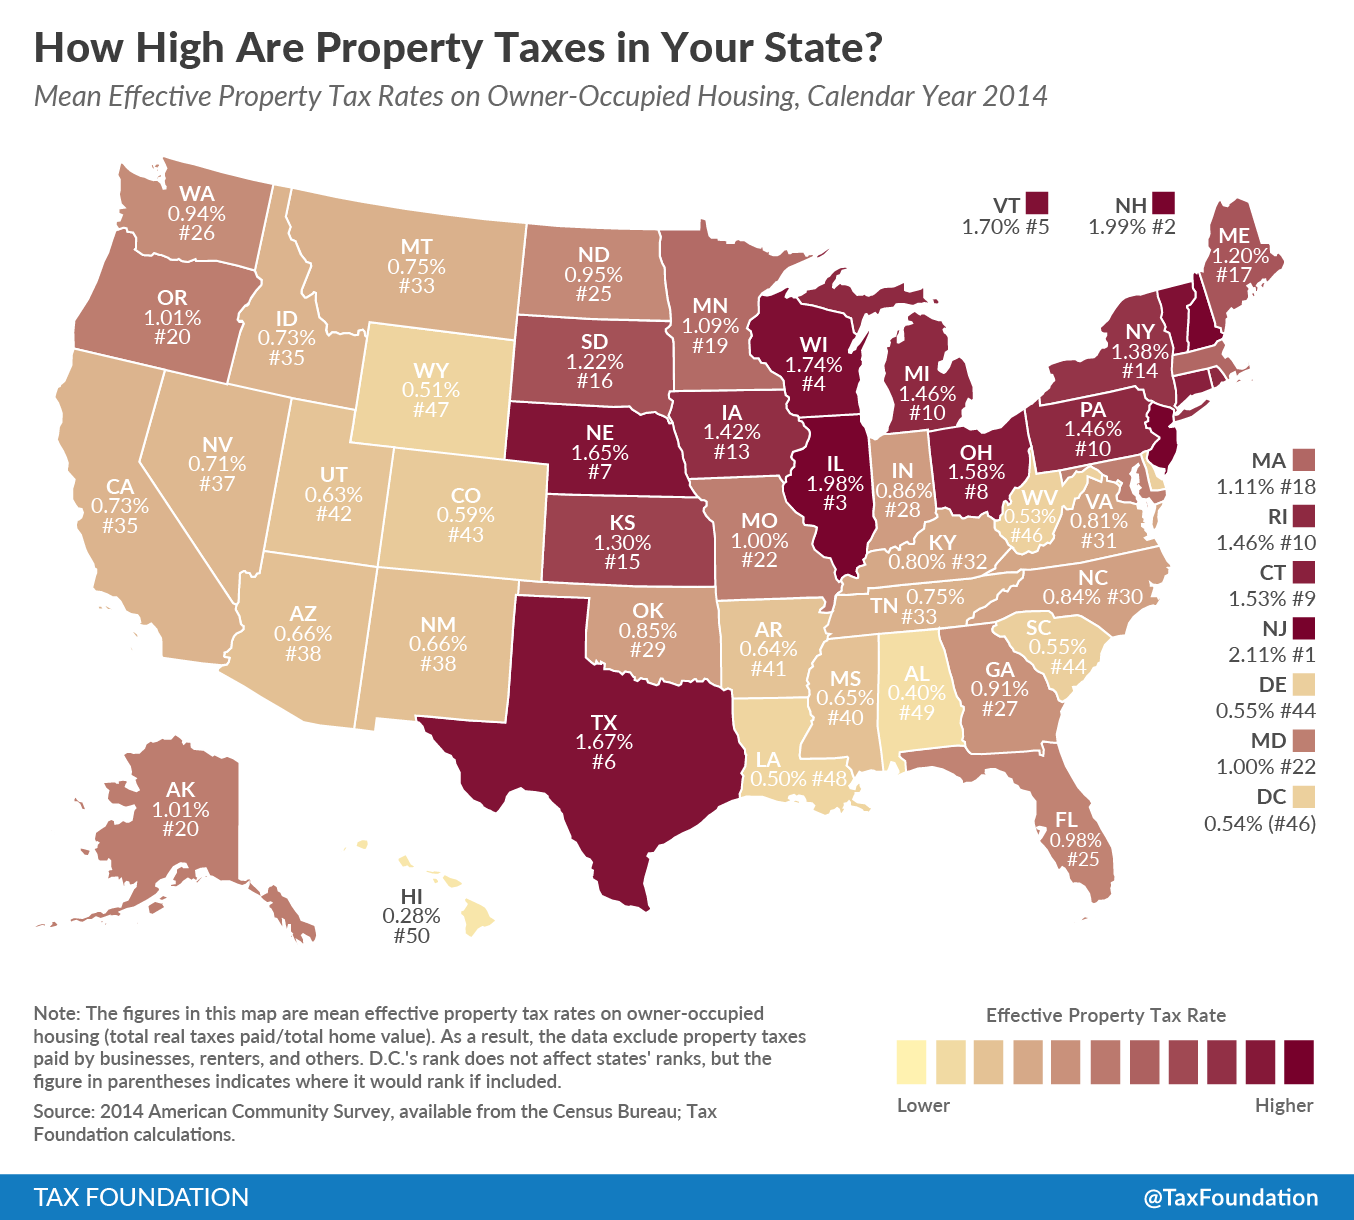 What Home In New Jersey Has The Highest Property Taxes